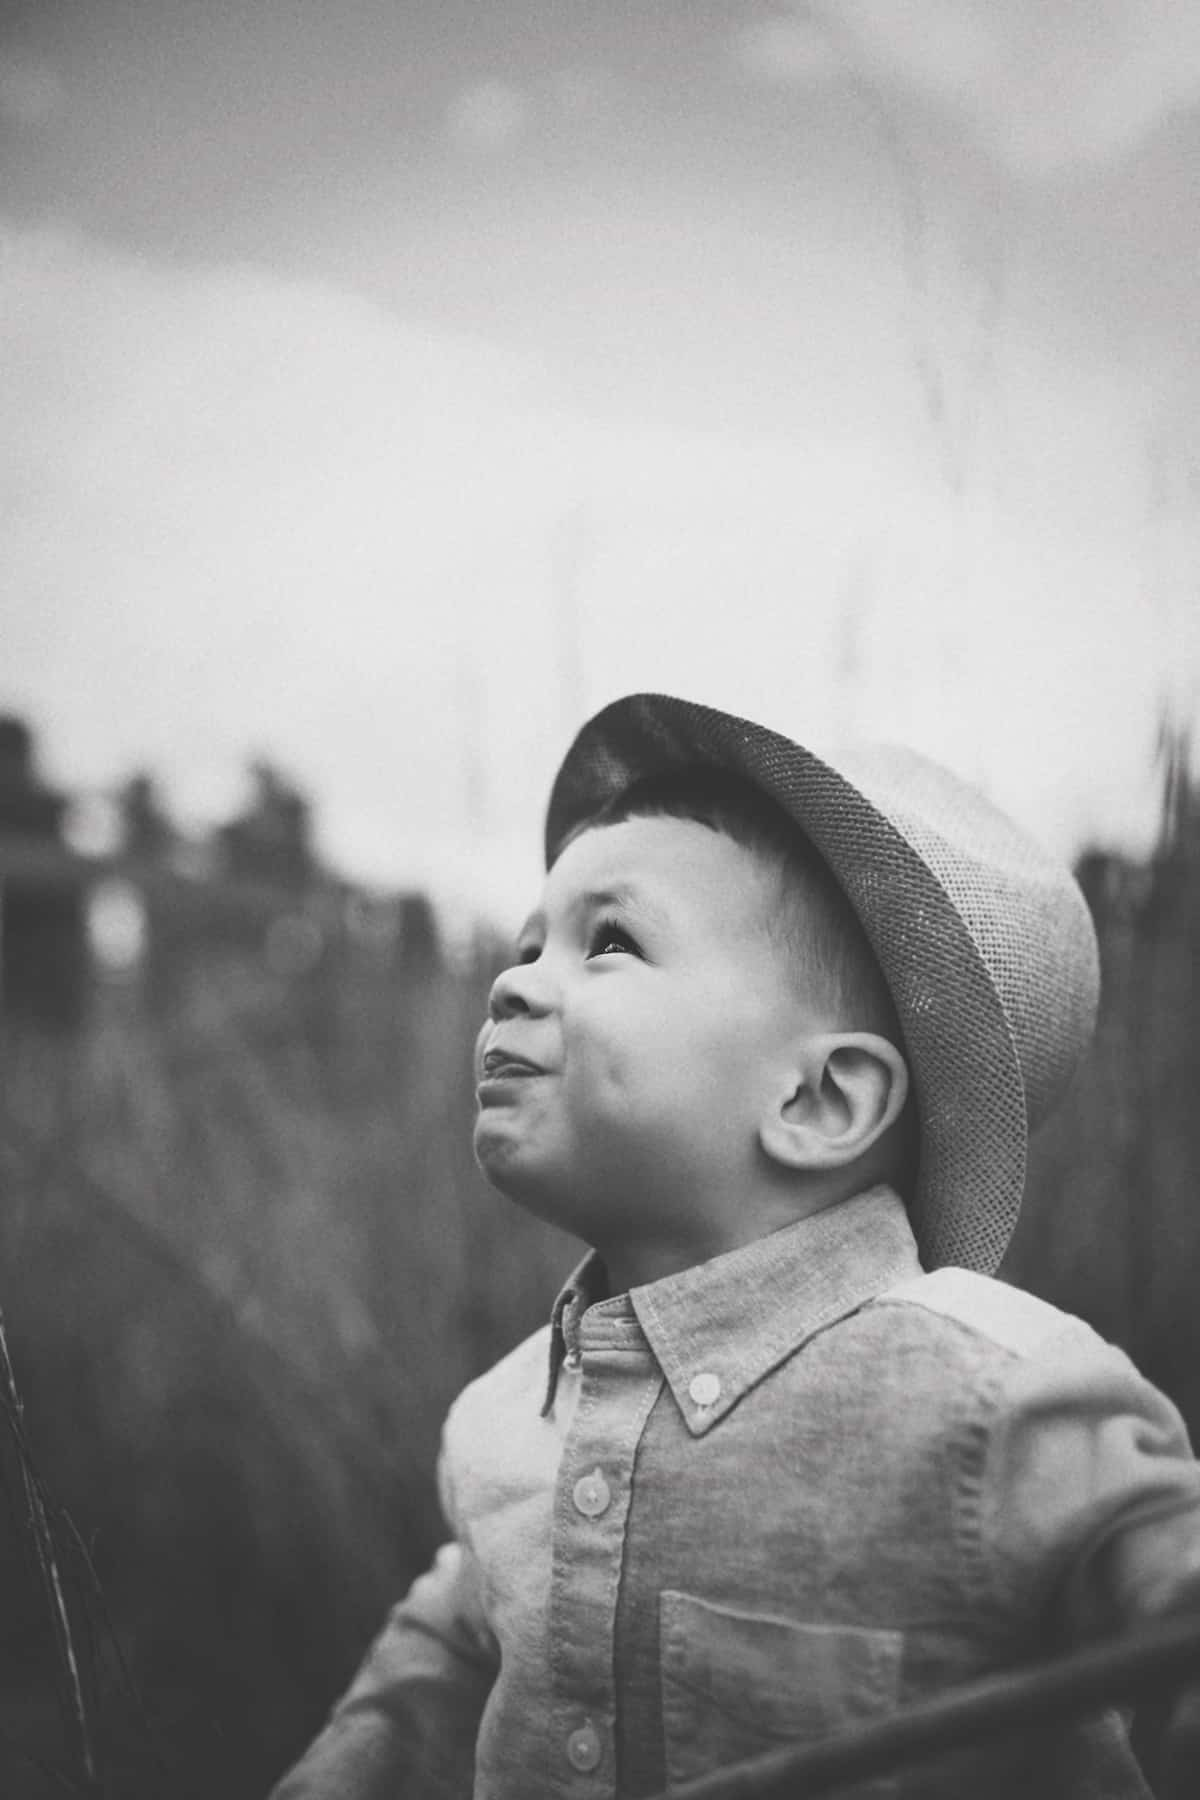 Child looking up wearing a hat